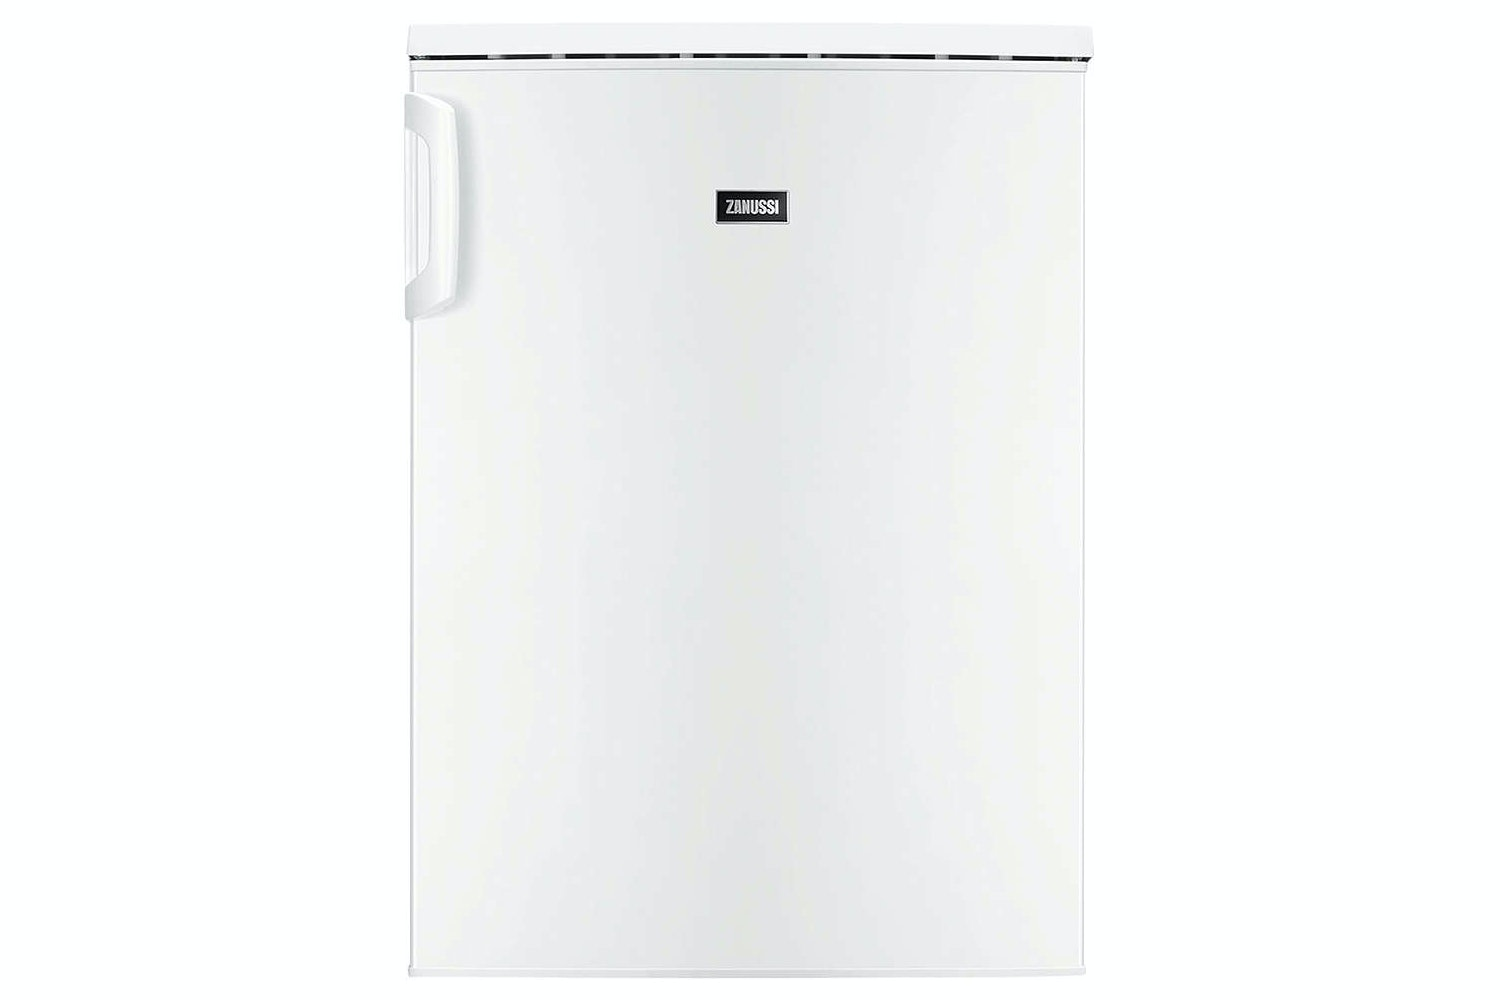 Zanussi Freestanding Under Counter Fridge | ZRG16605WV